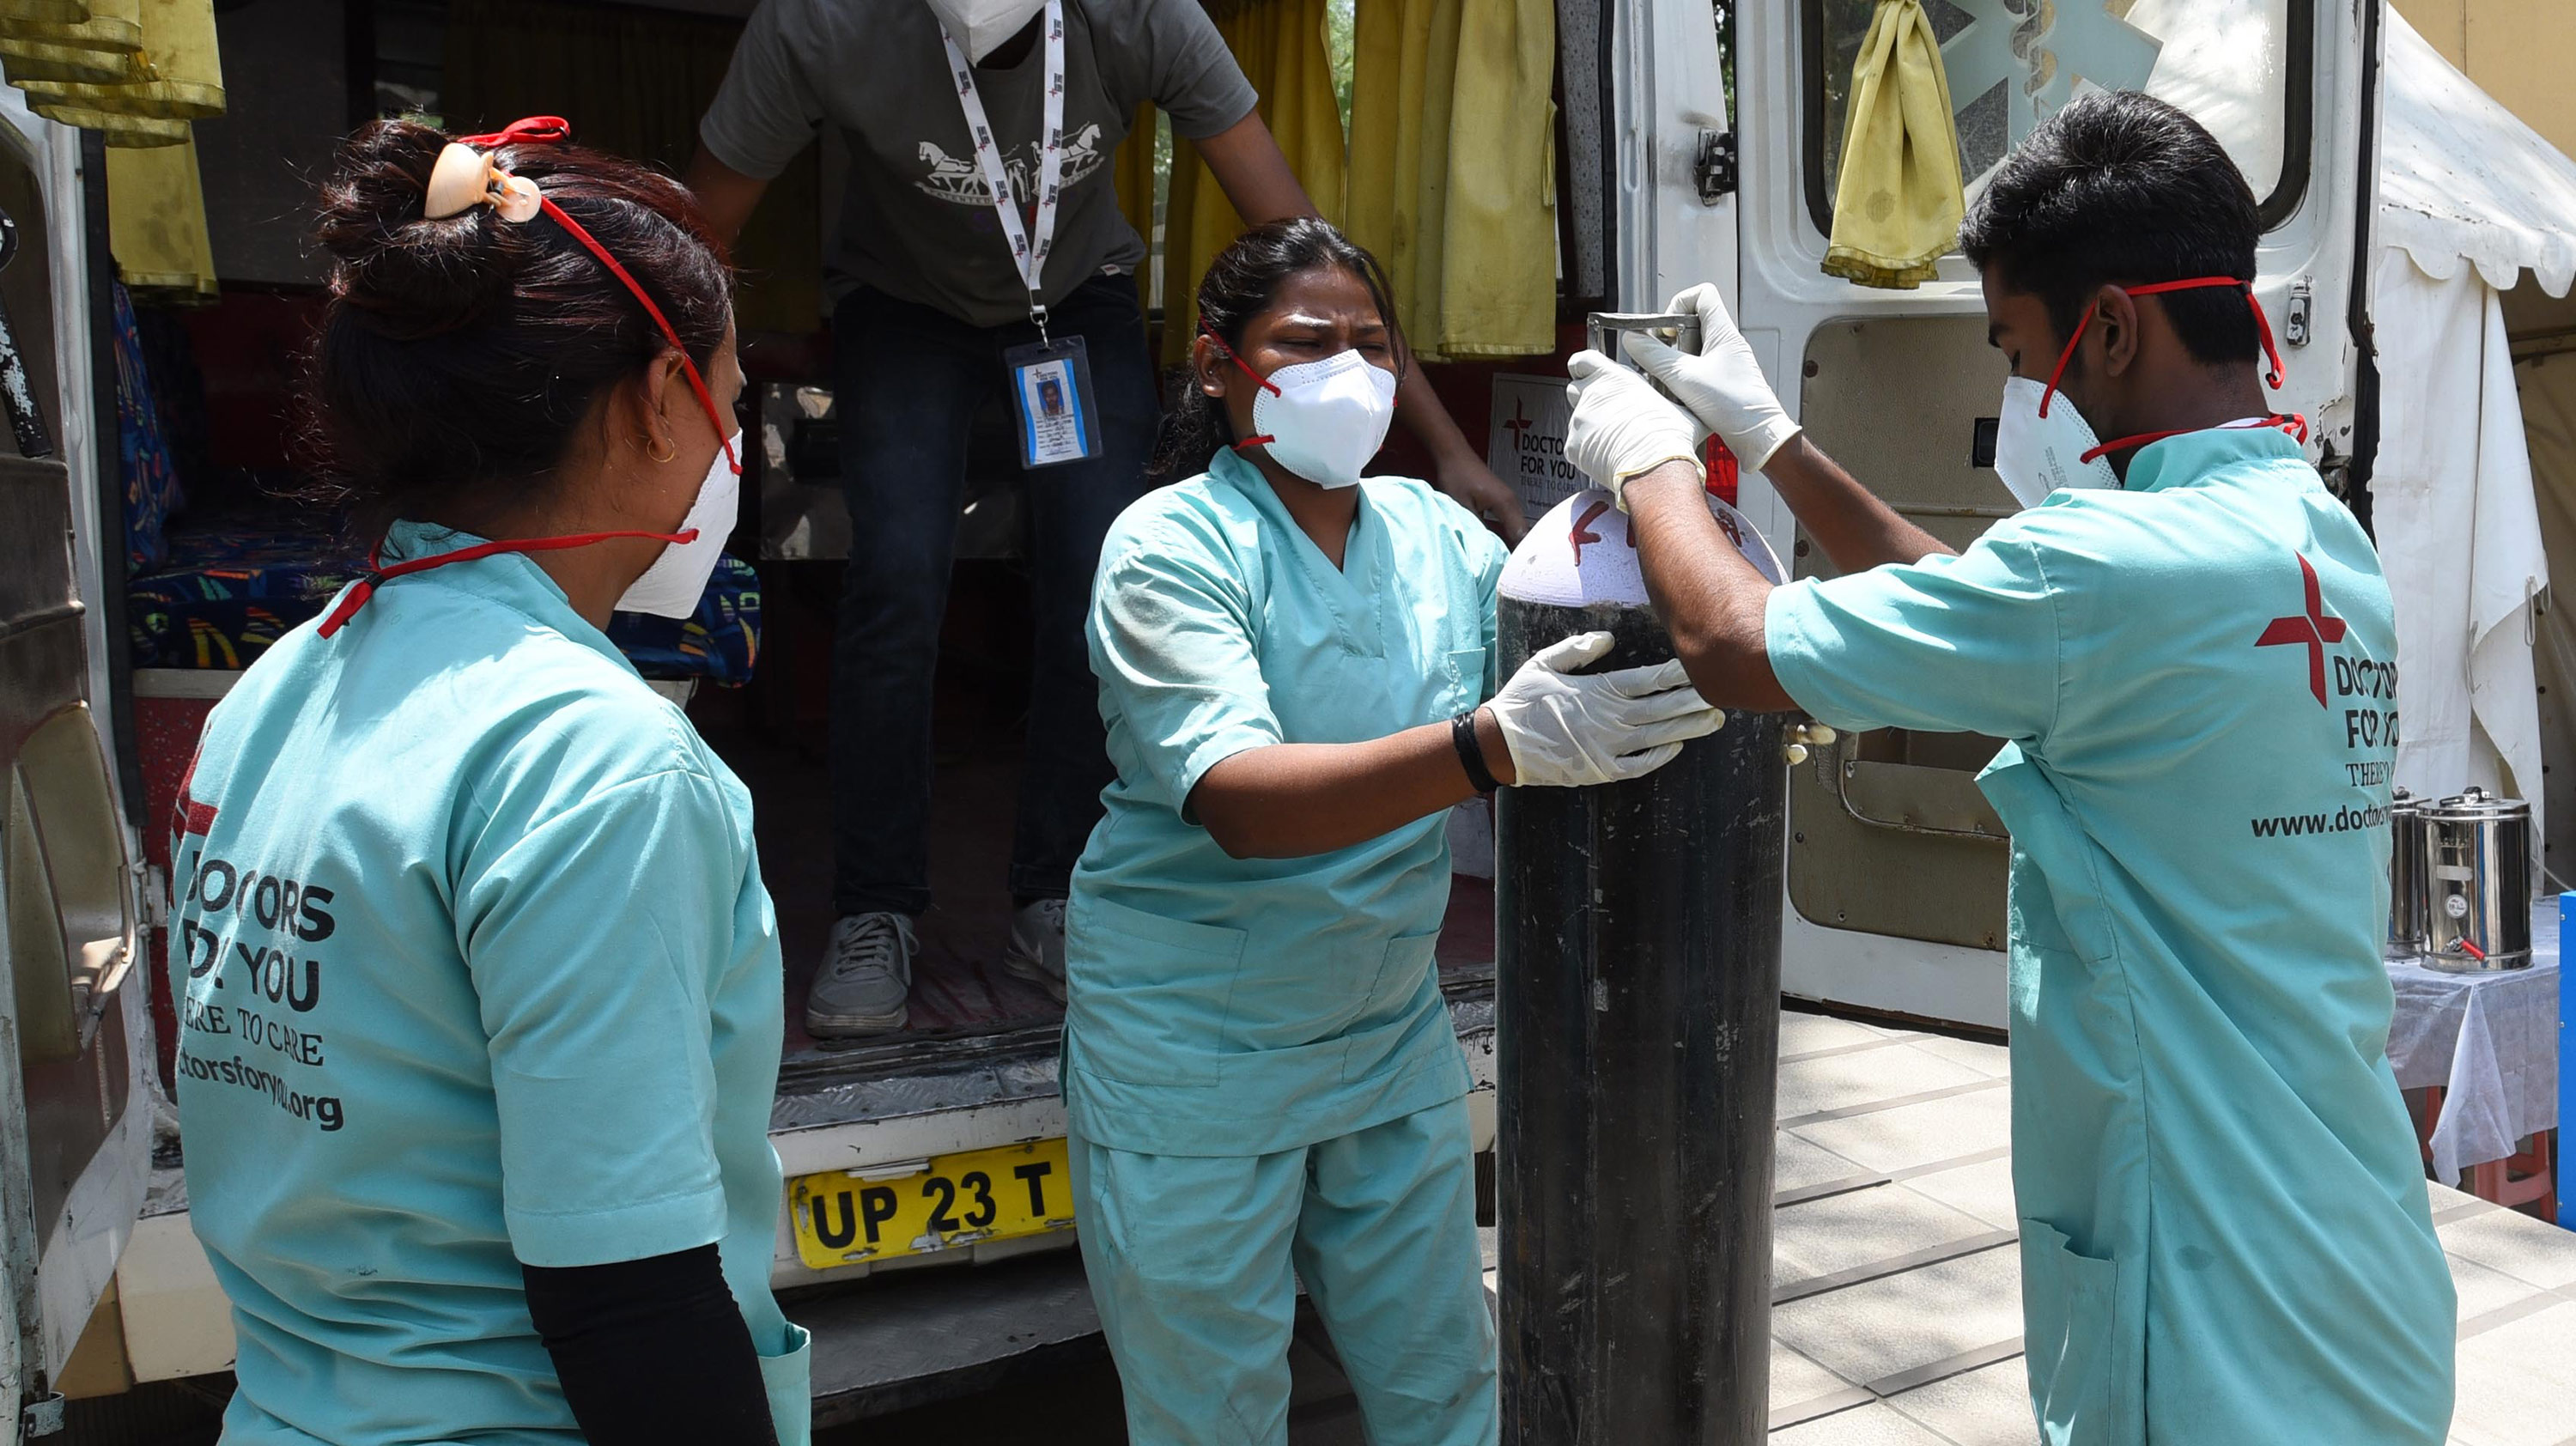 Health workers unloaded oxygen cylinders from a van at a Covid-19 care center in New Delhi, India, on May 16.